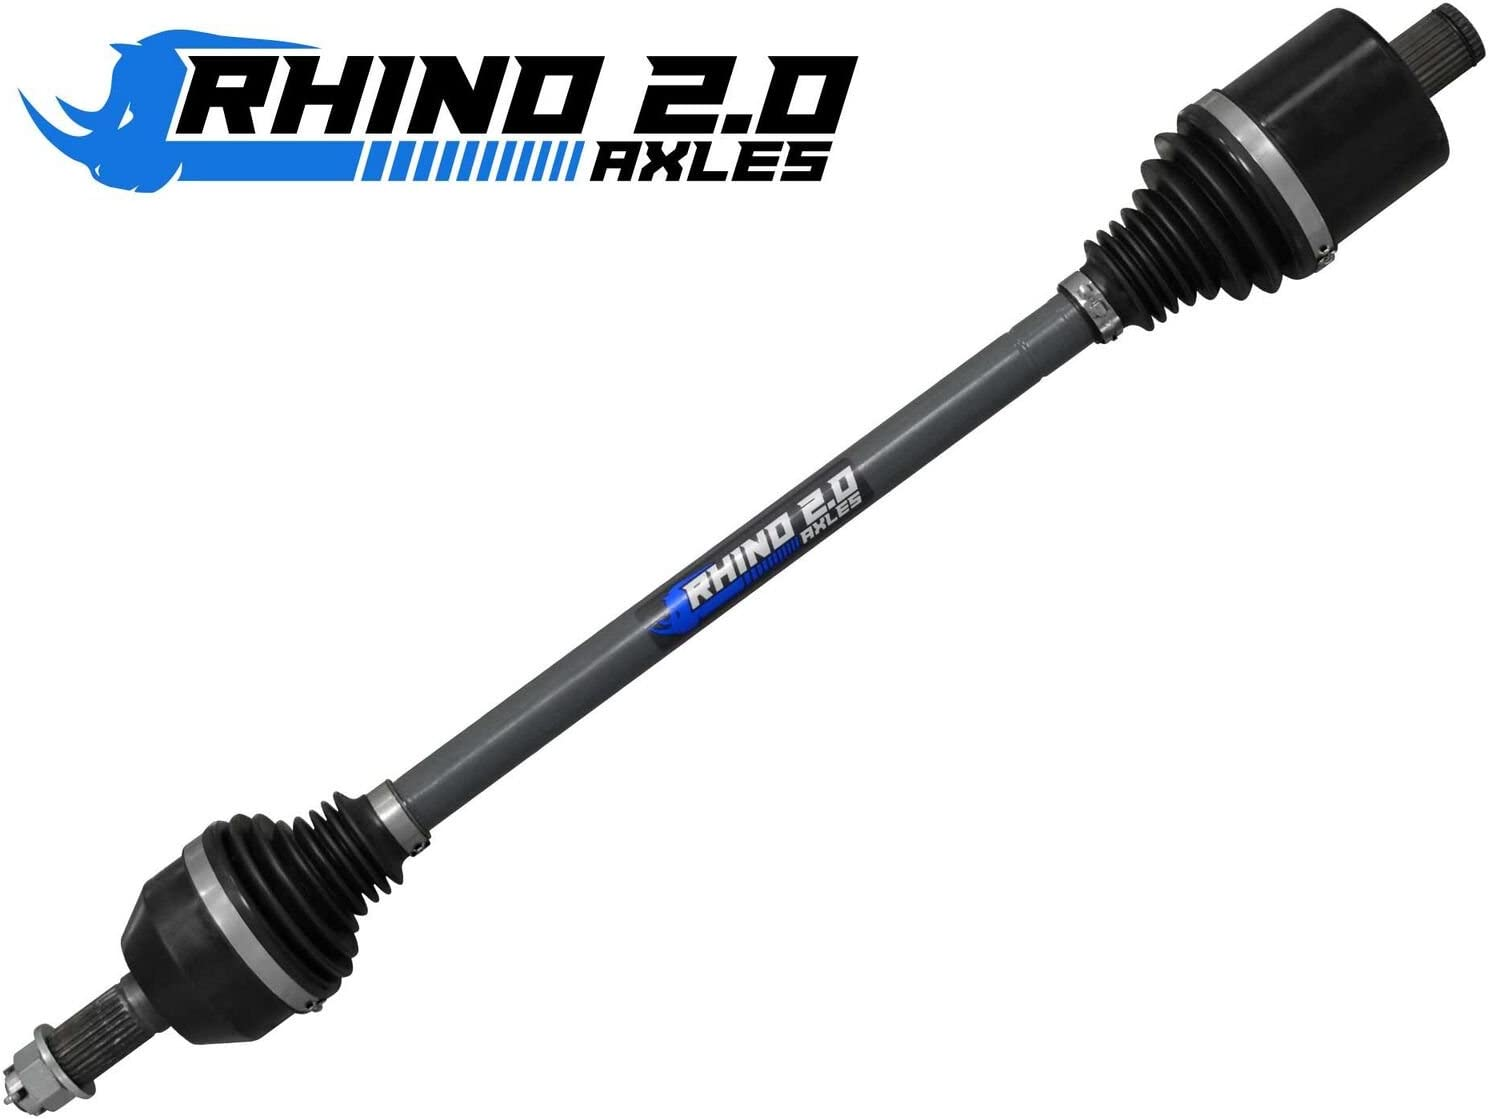 2011-2015 For Use With 6 Lift Kit SuperATV Rhino 2.0 Can-Am Commander 800//1000 Extended Length CV Axle - Front Right